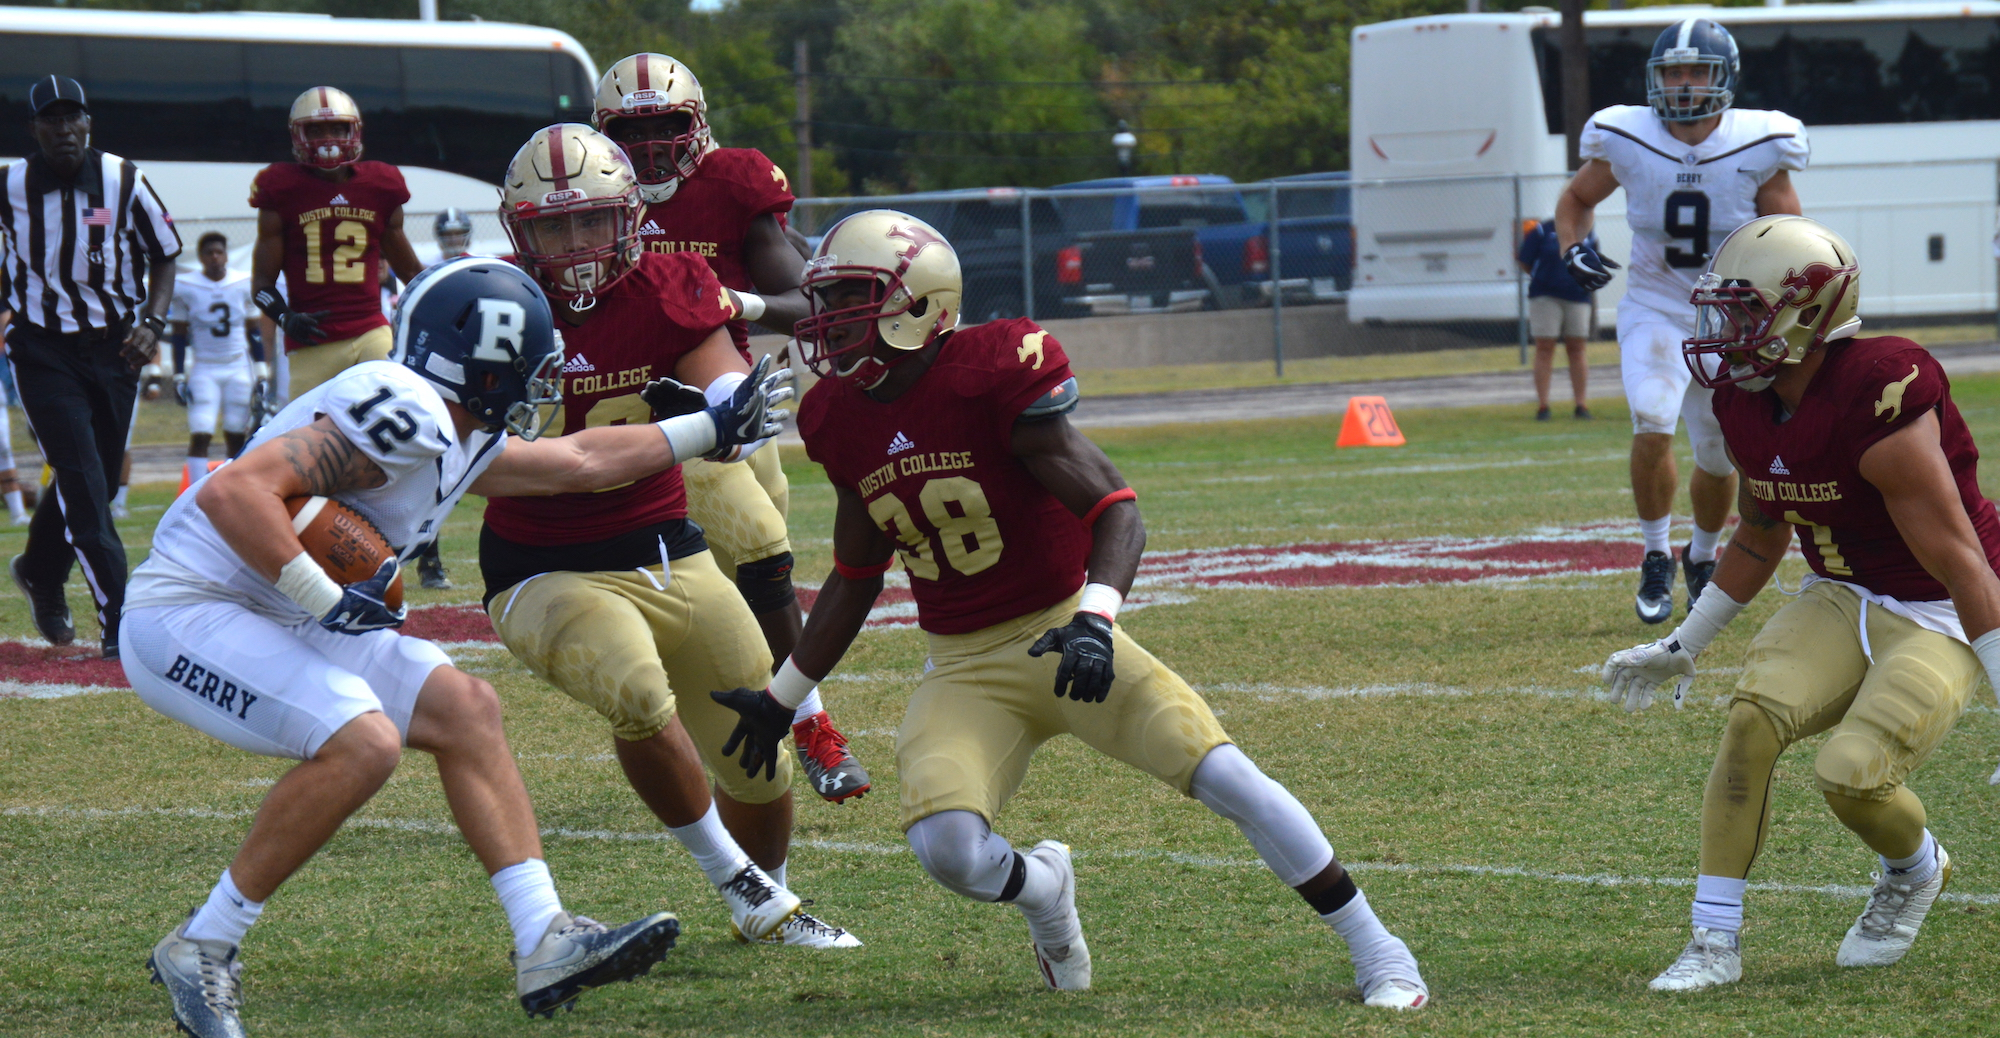 Turnovers Doom 'Roo Football in Loss to Berry